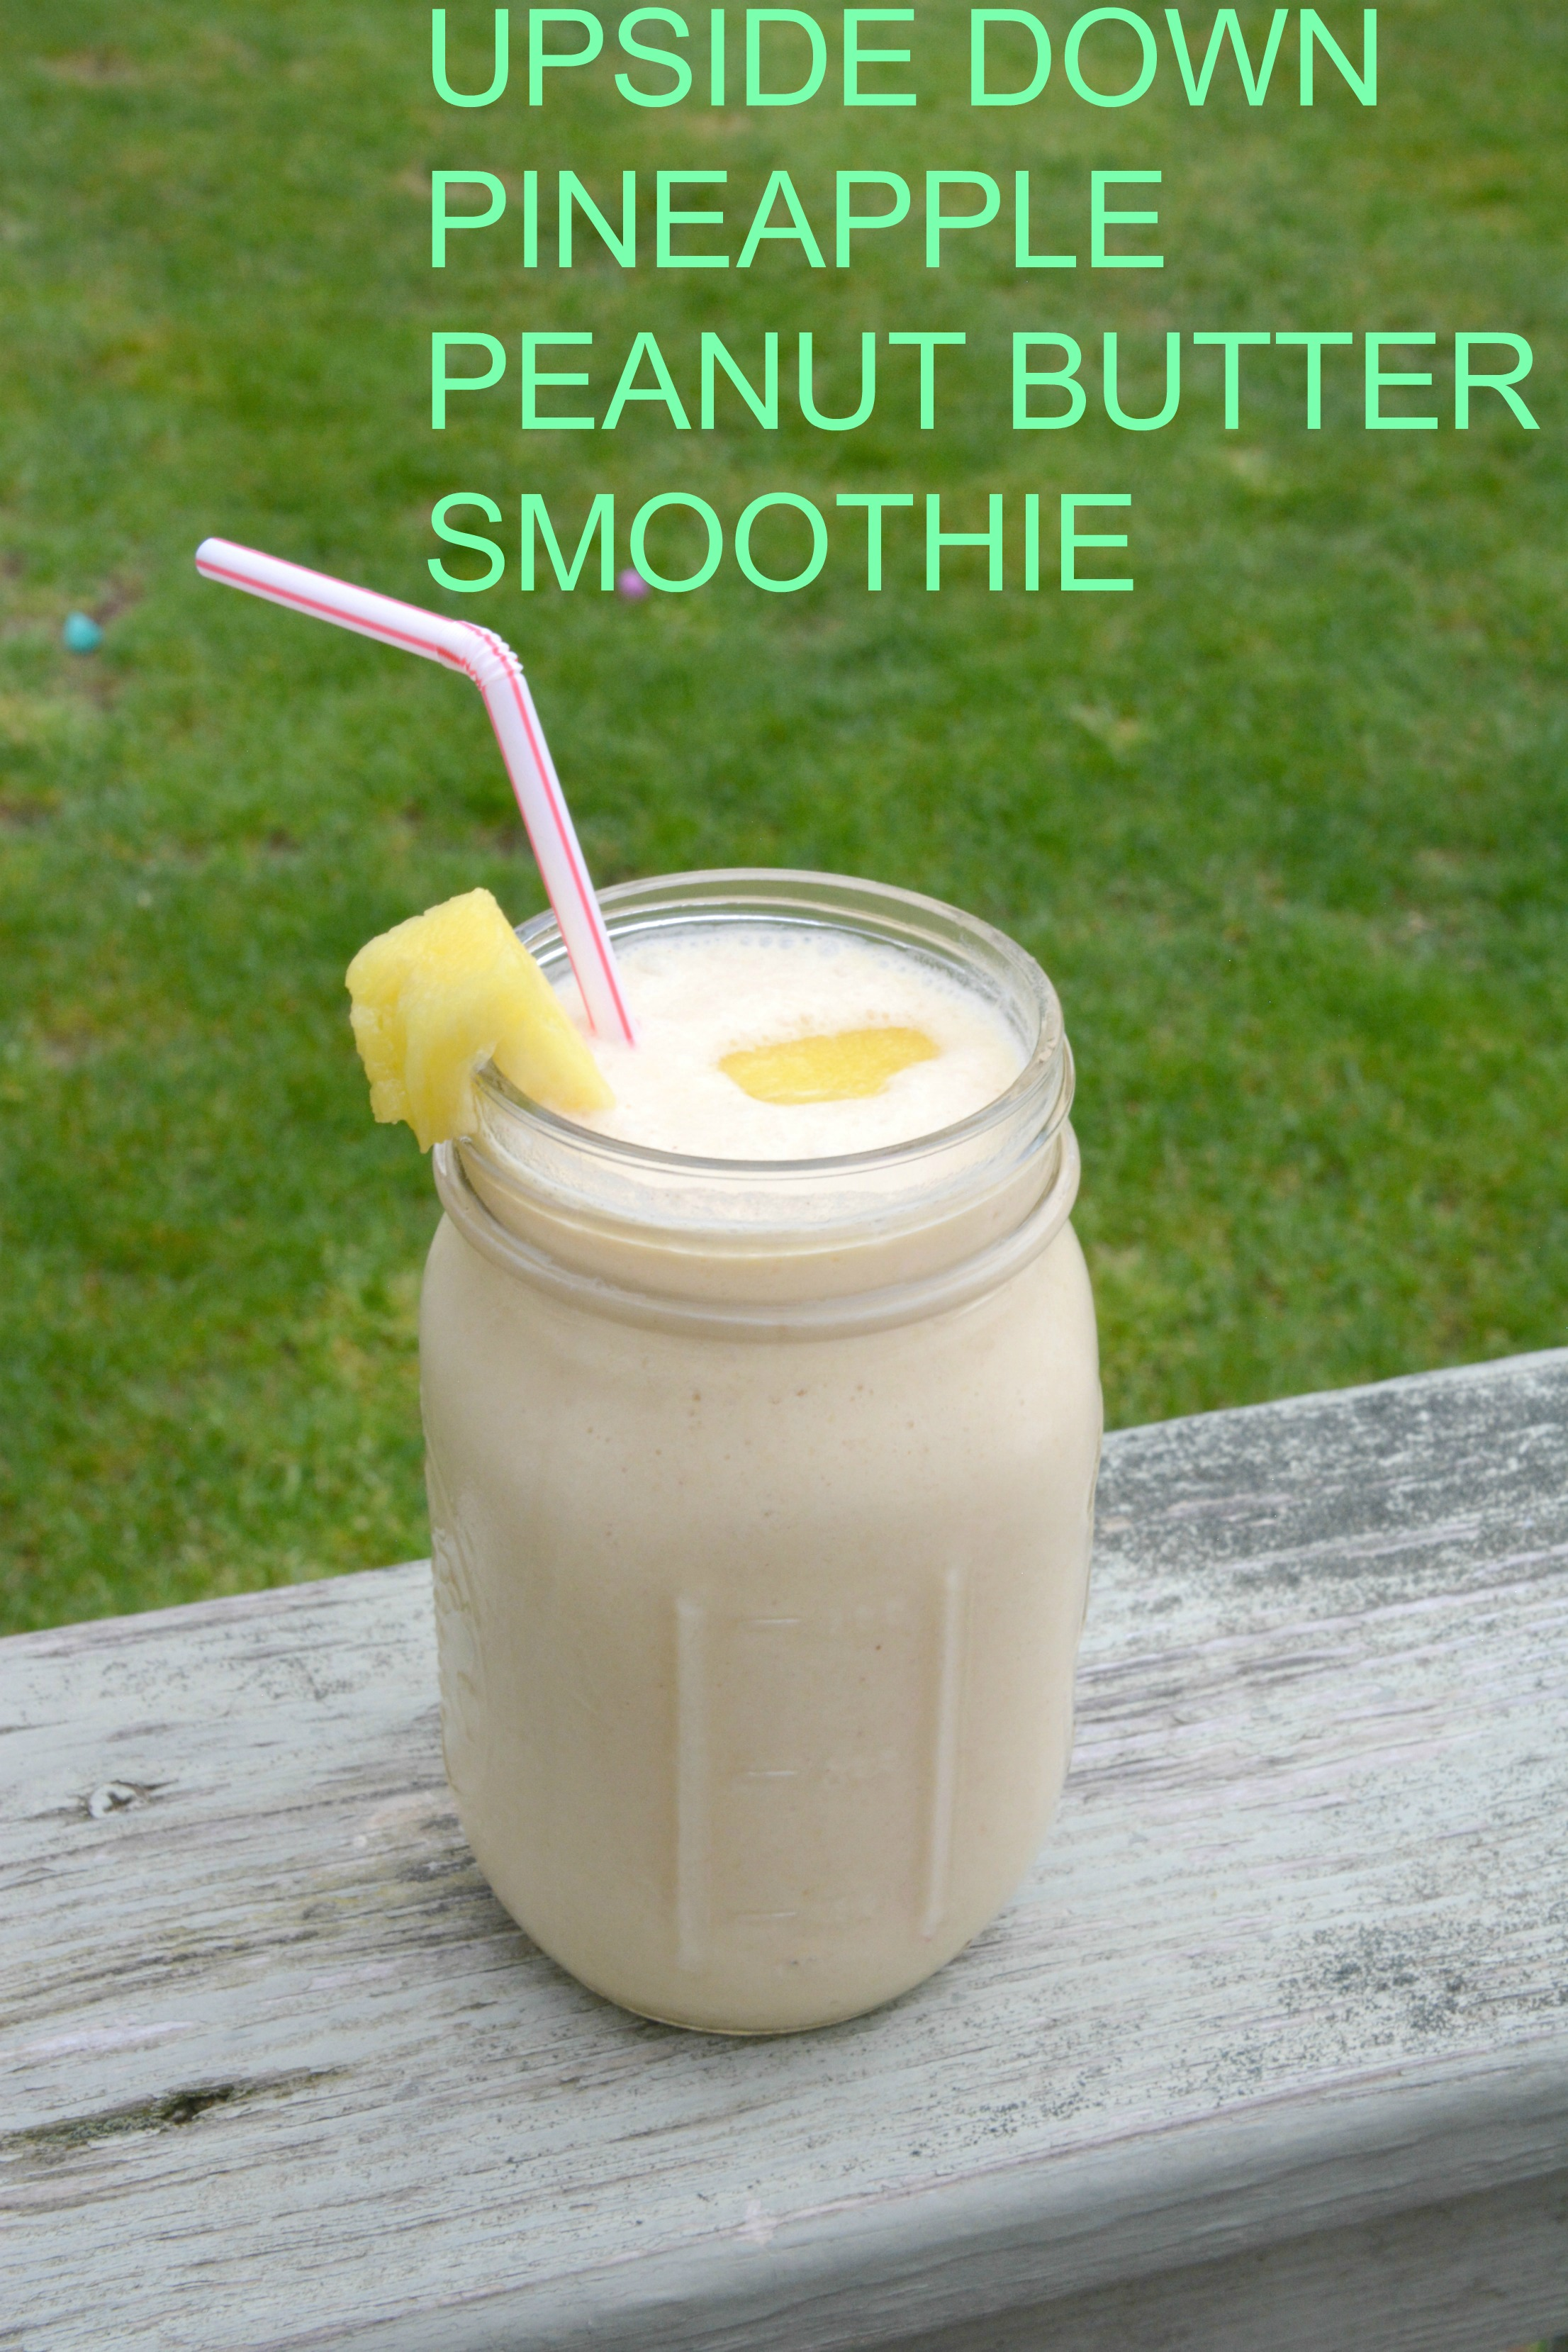 DSC 1032 Upside Down Pineapple Peanut Butter Smoothie Recipe!